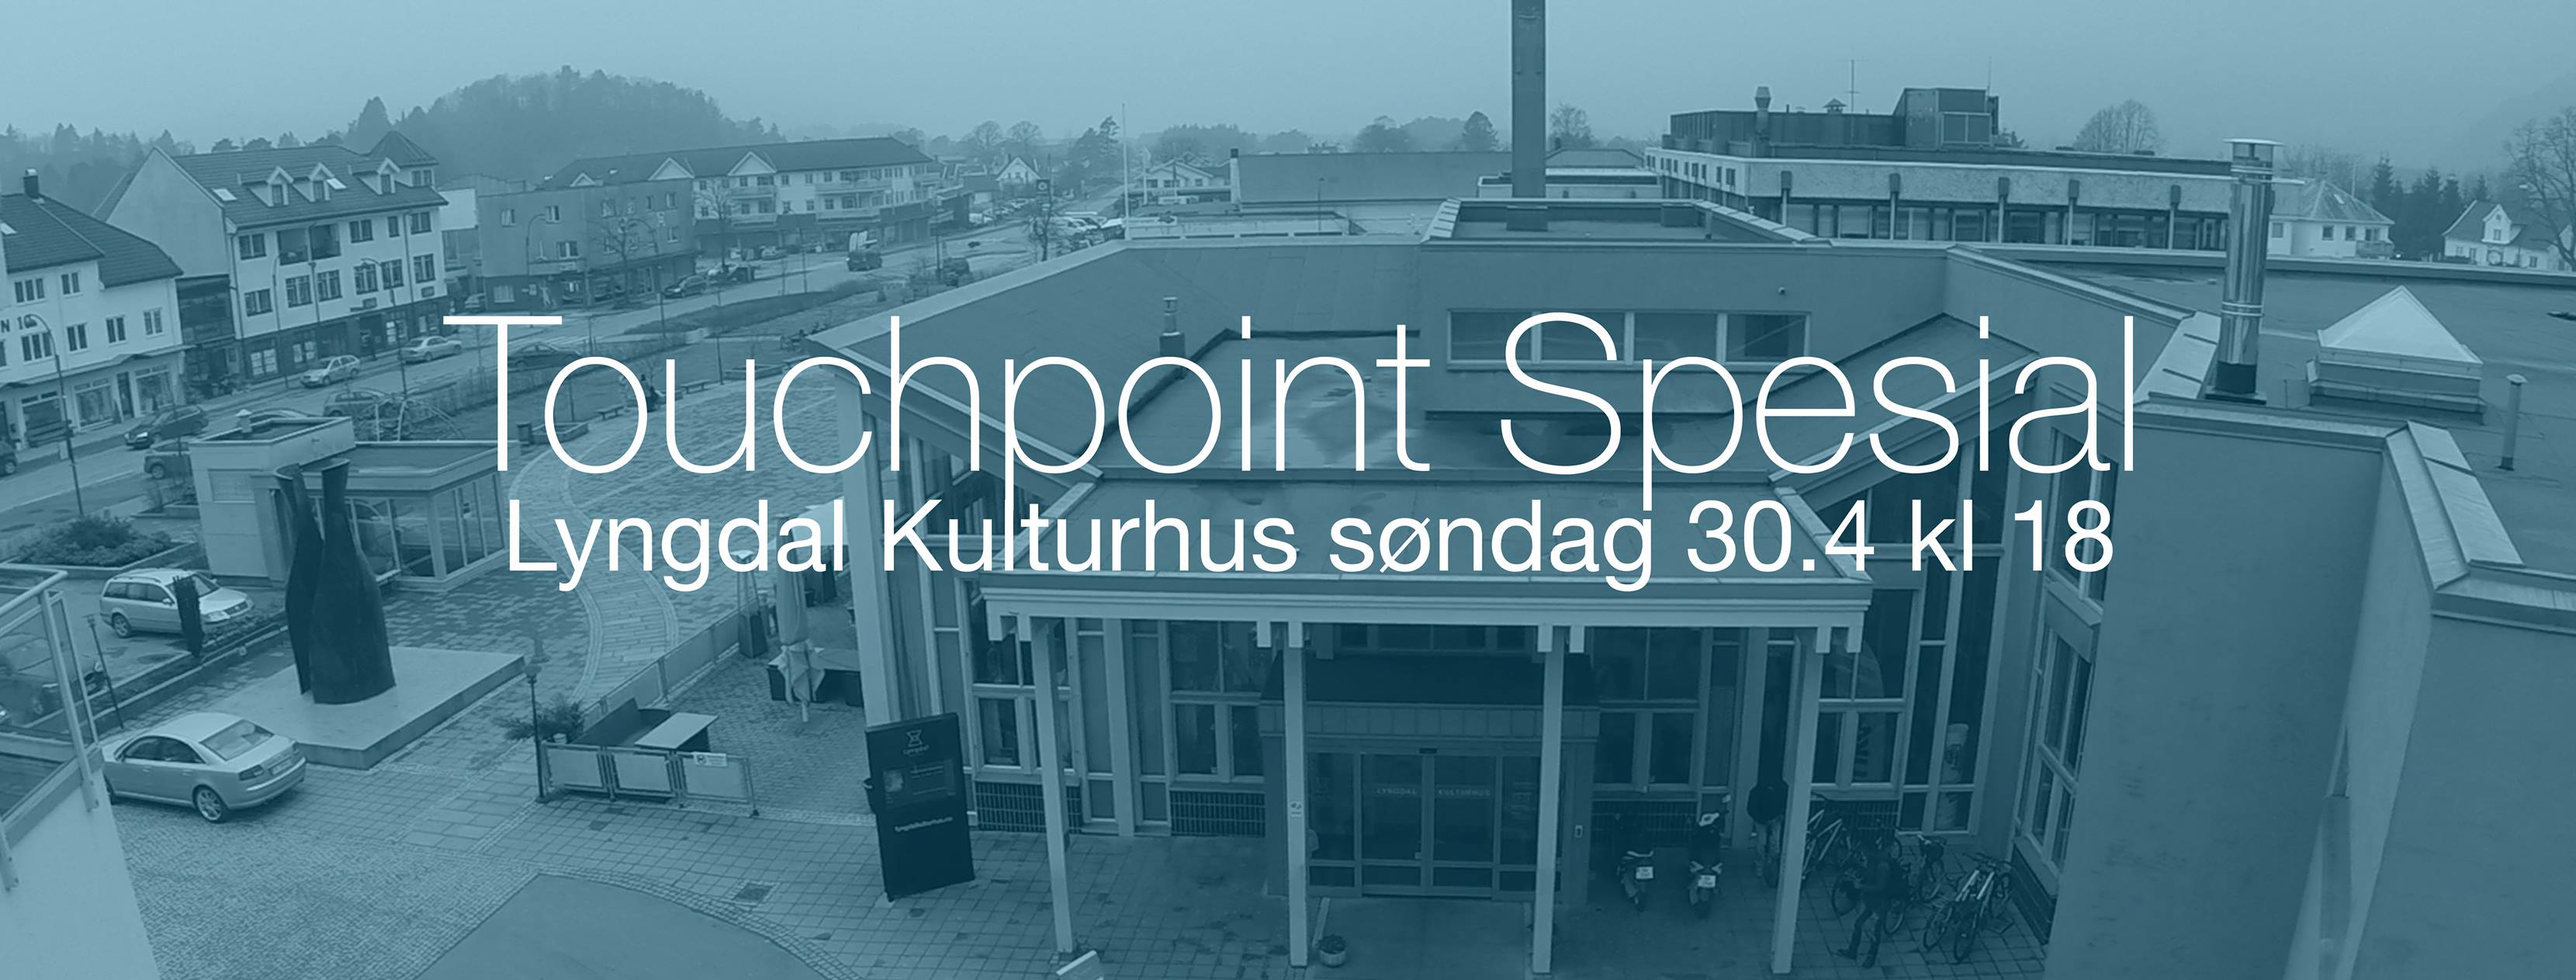 «Touchpoint-spesial» i kulturhuset